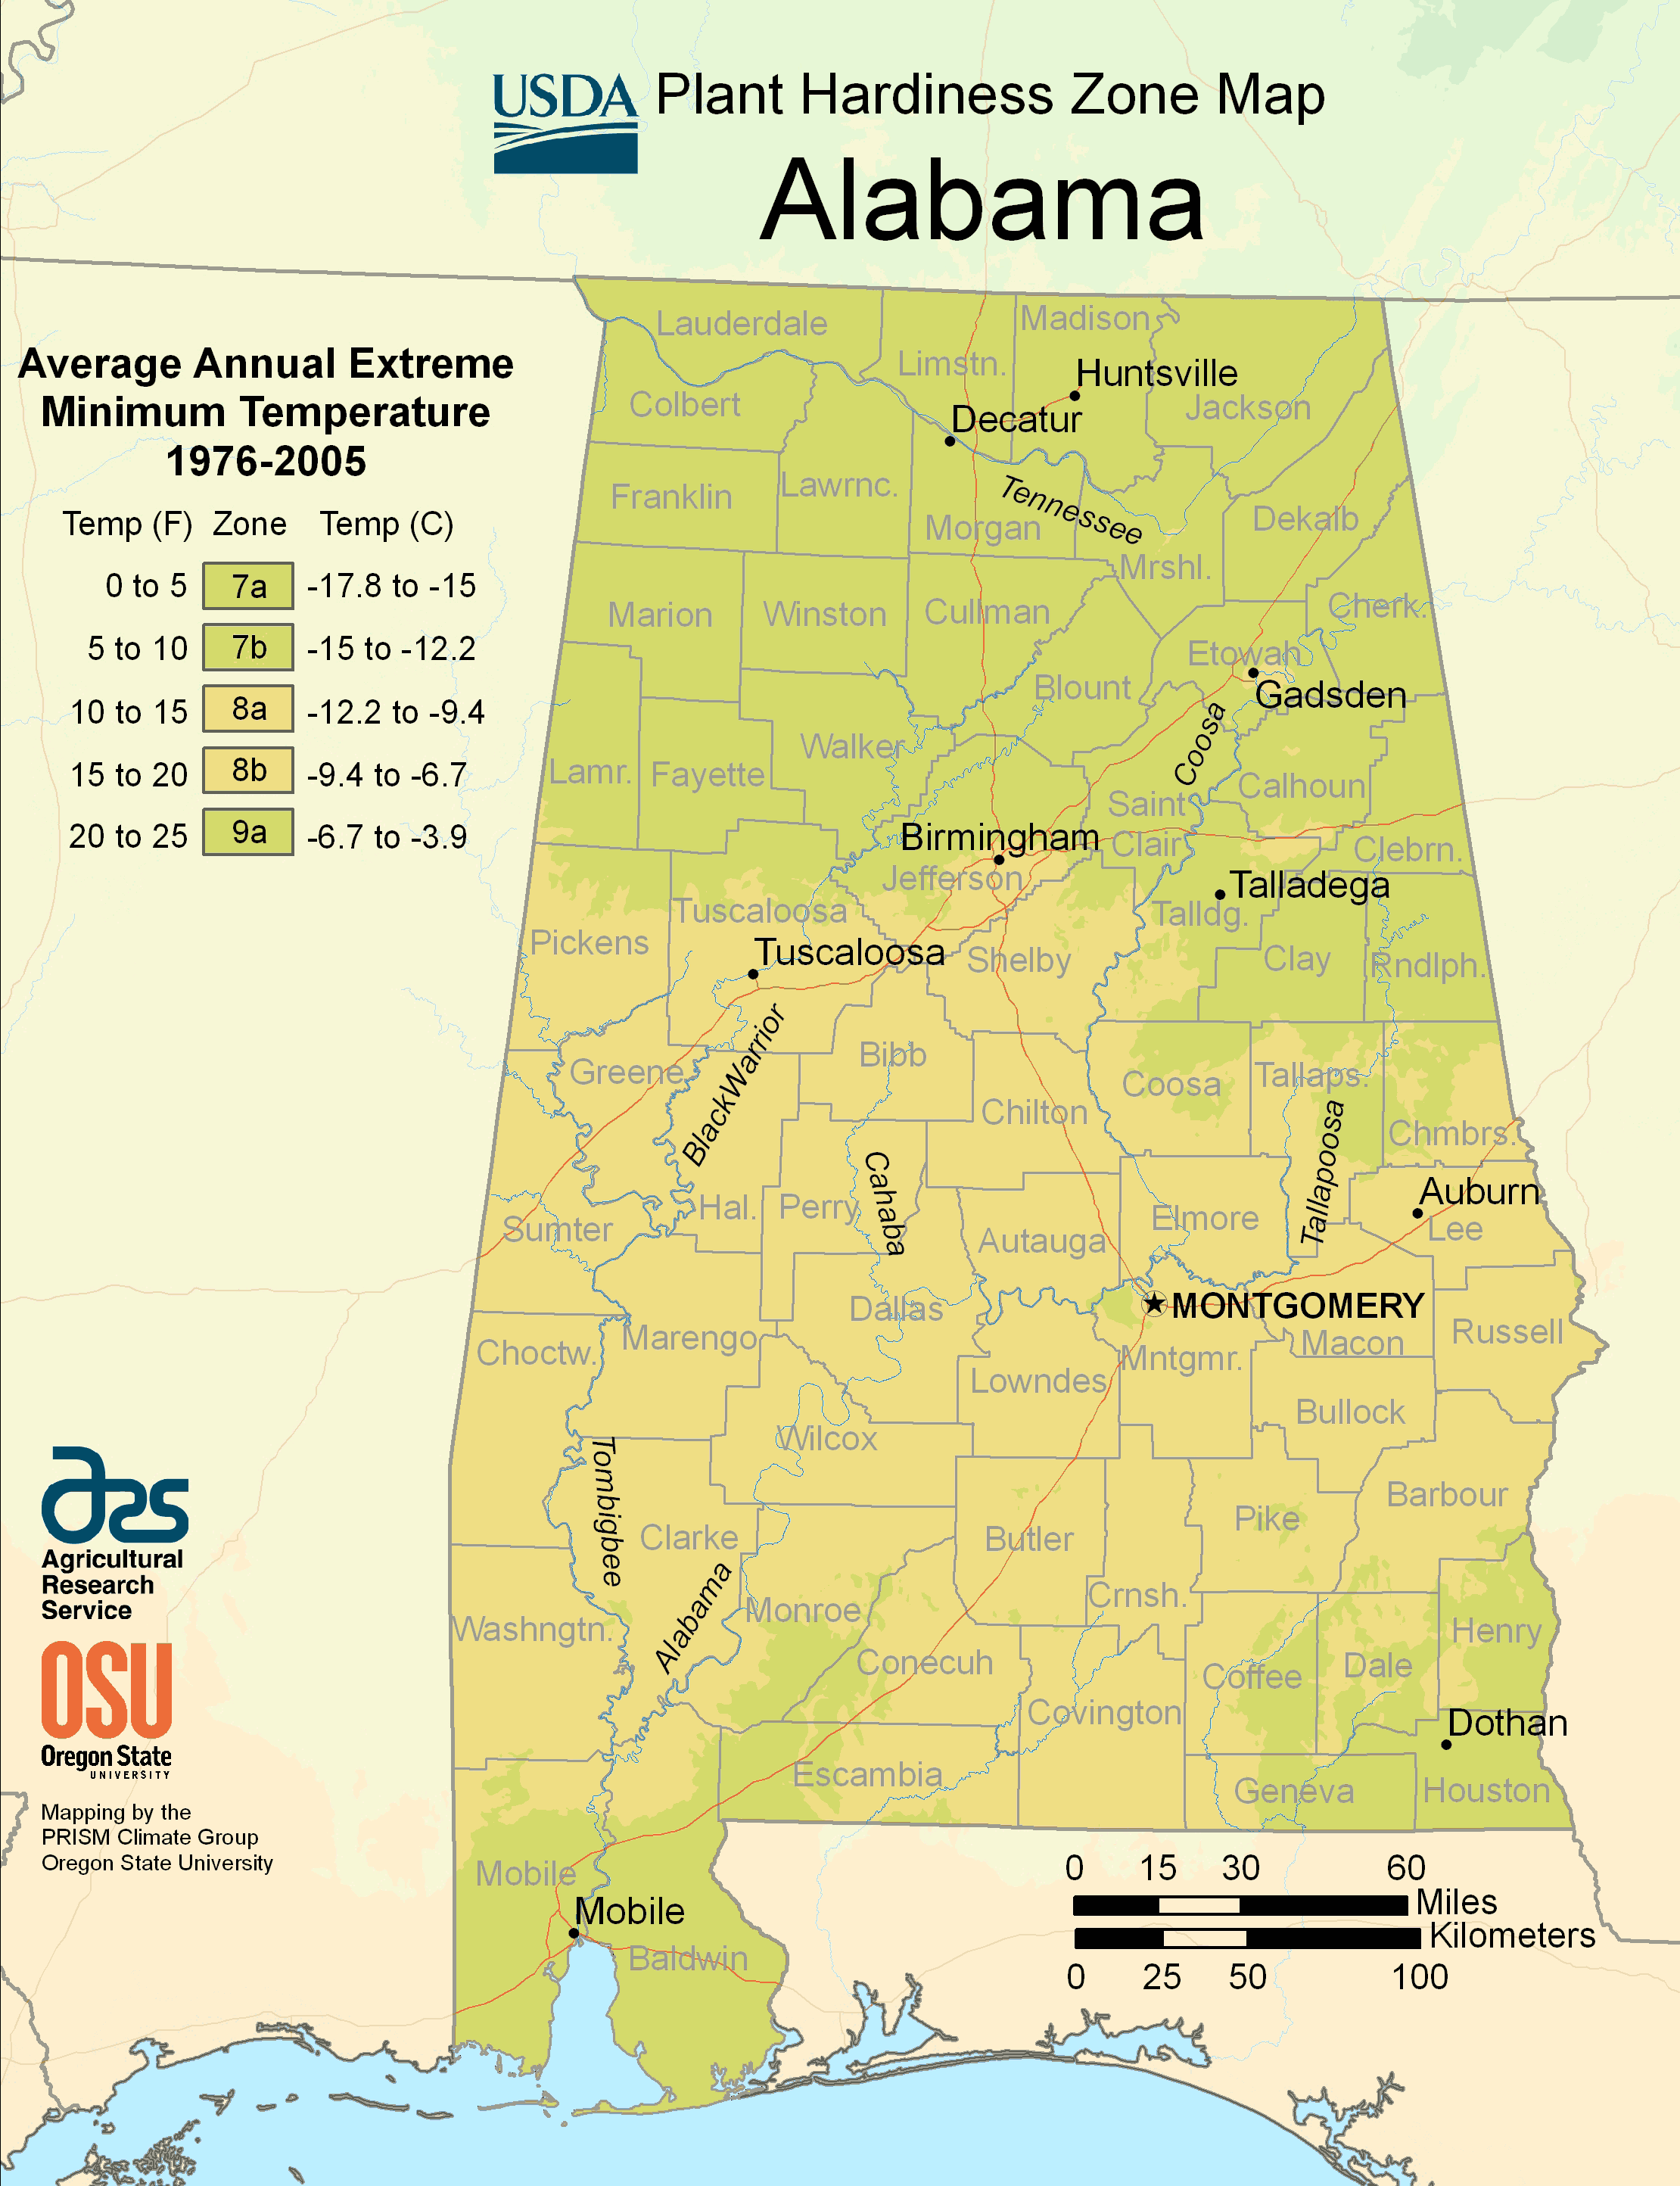 Alabama Plant Hardiness Zone Map Mapsofnet - Maps of alabama